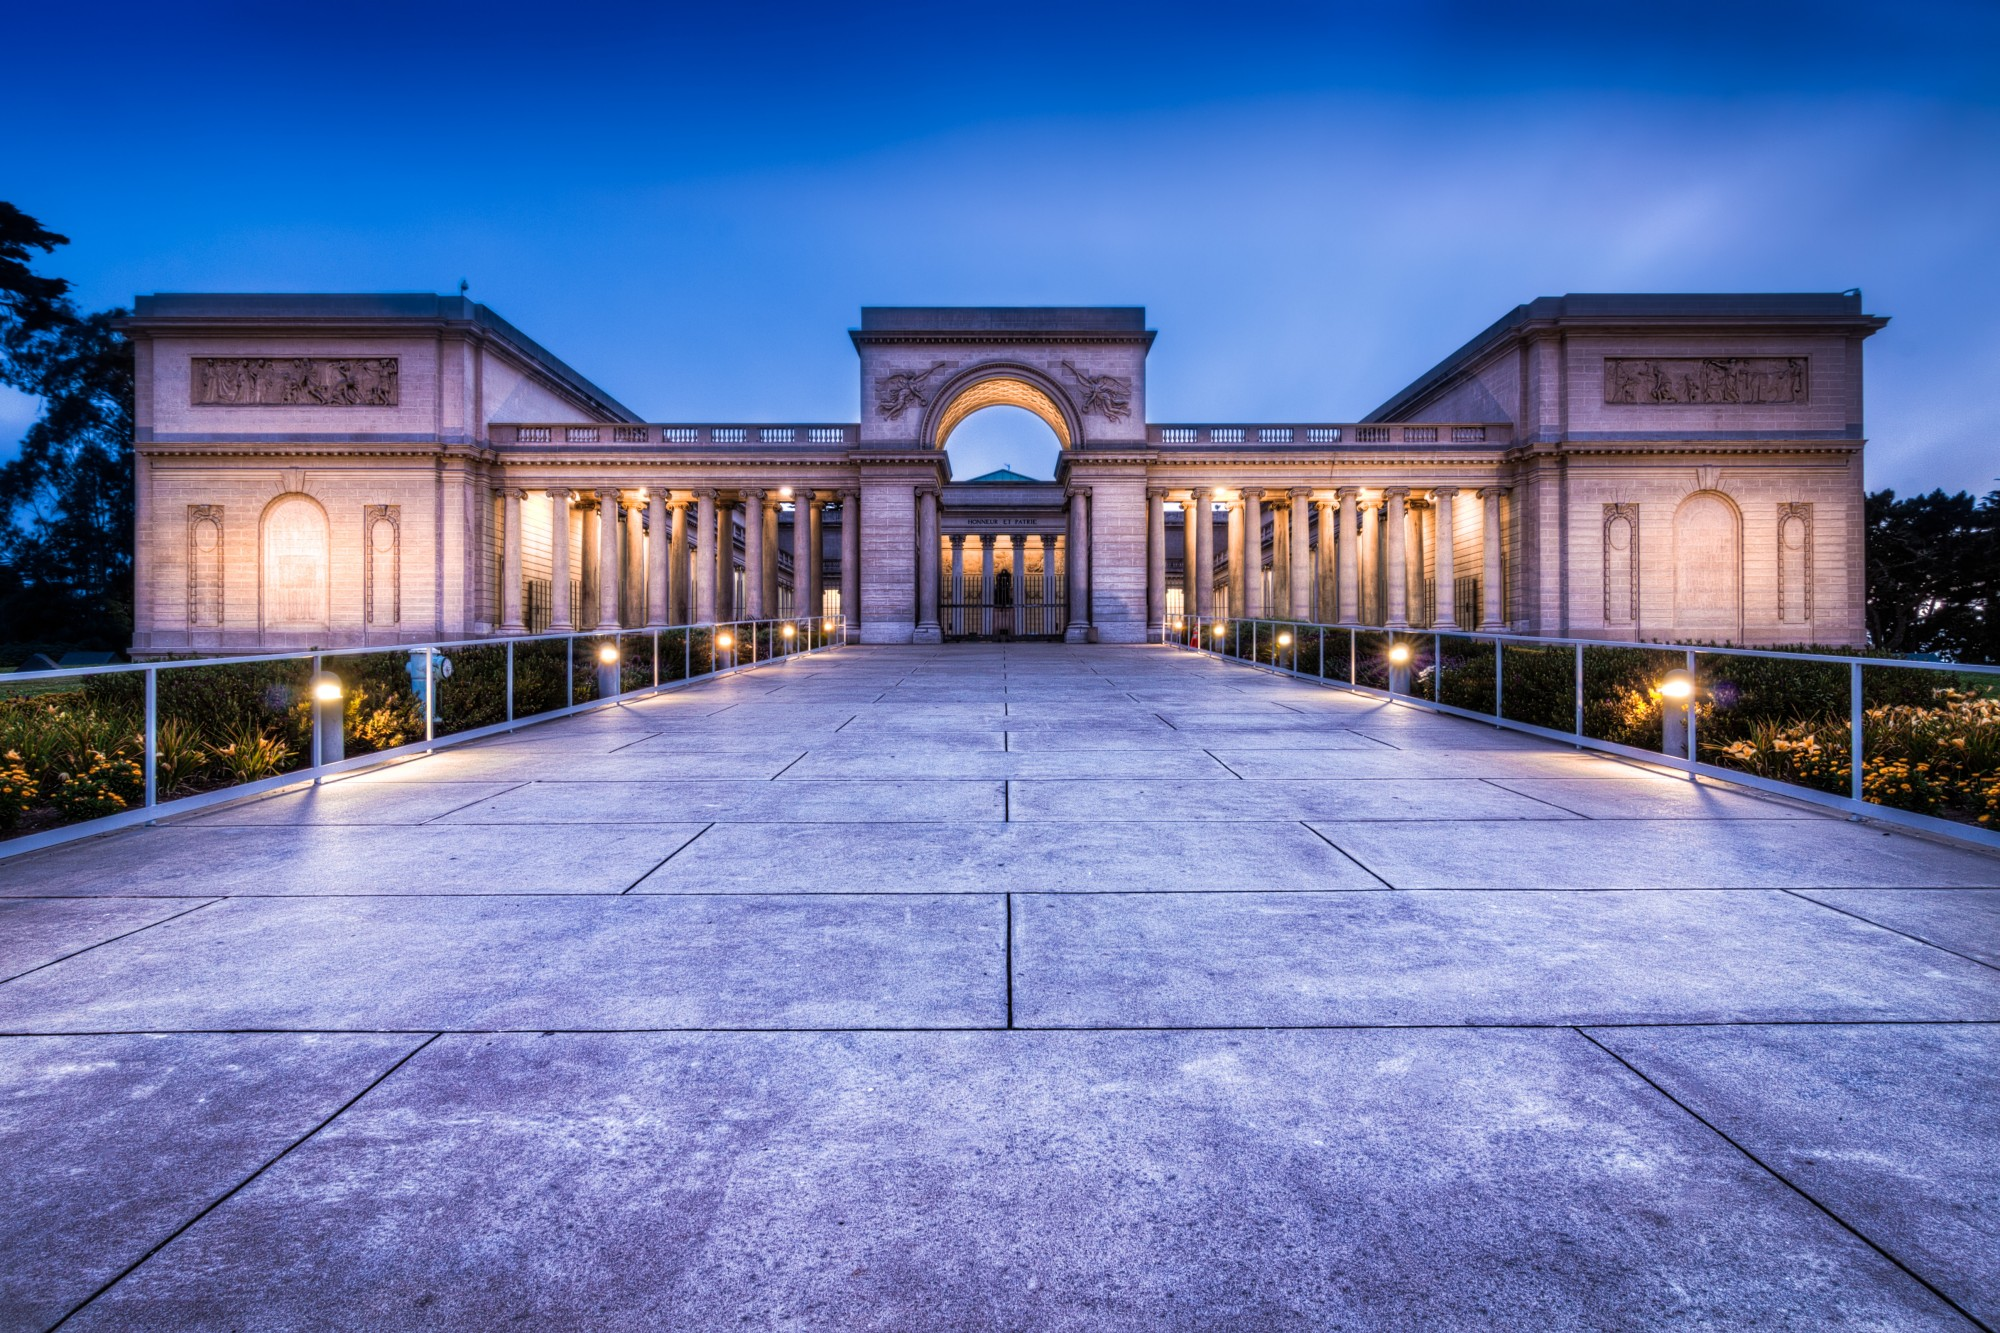 The Legion of Honor is one of the country's most revered art museums.